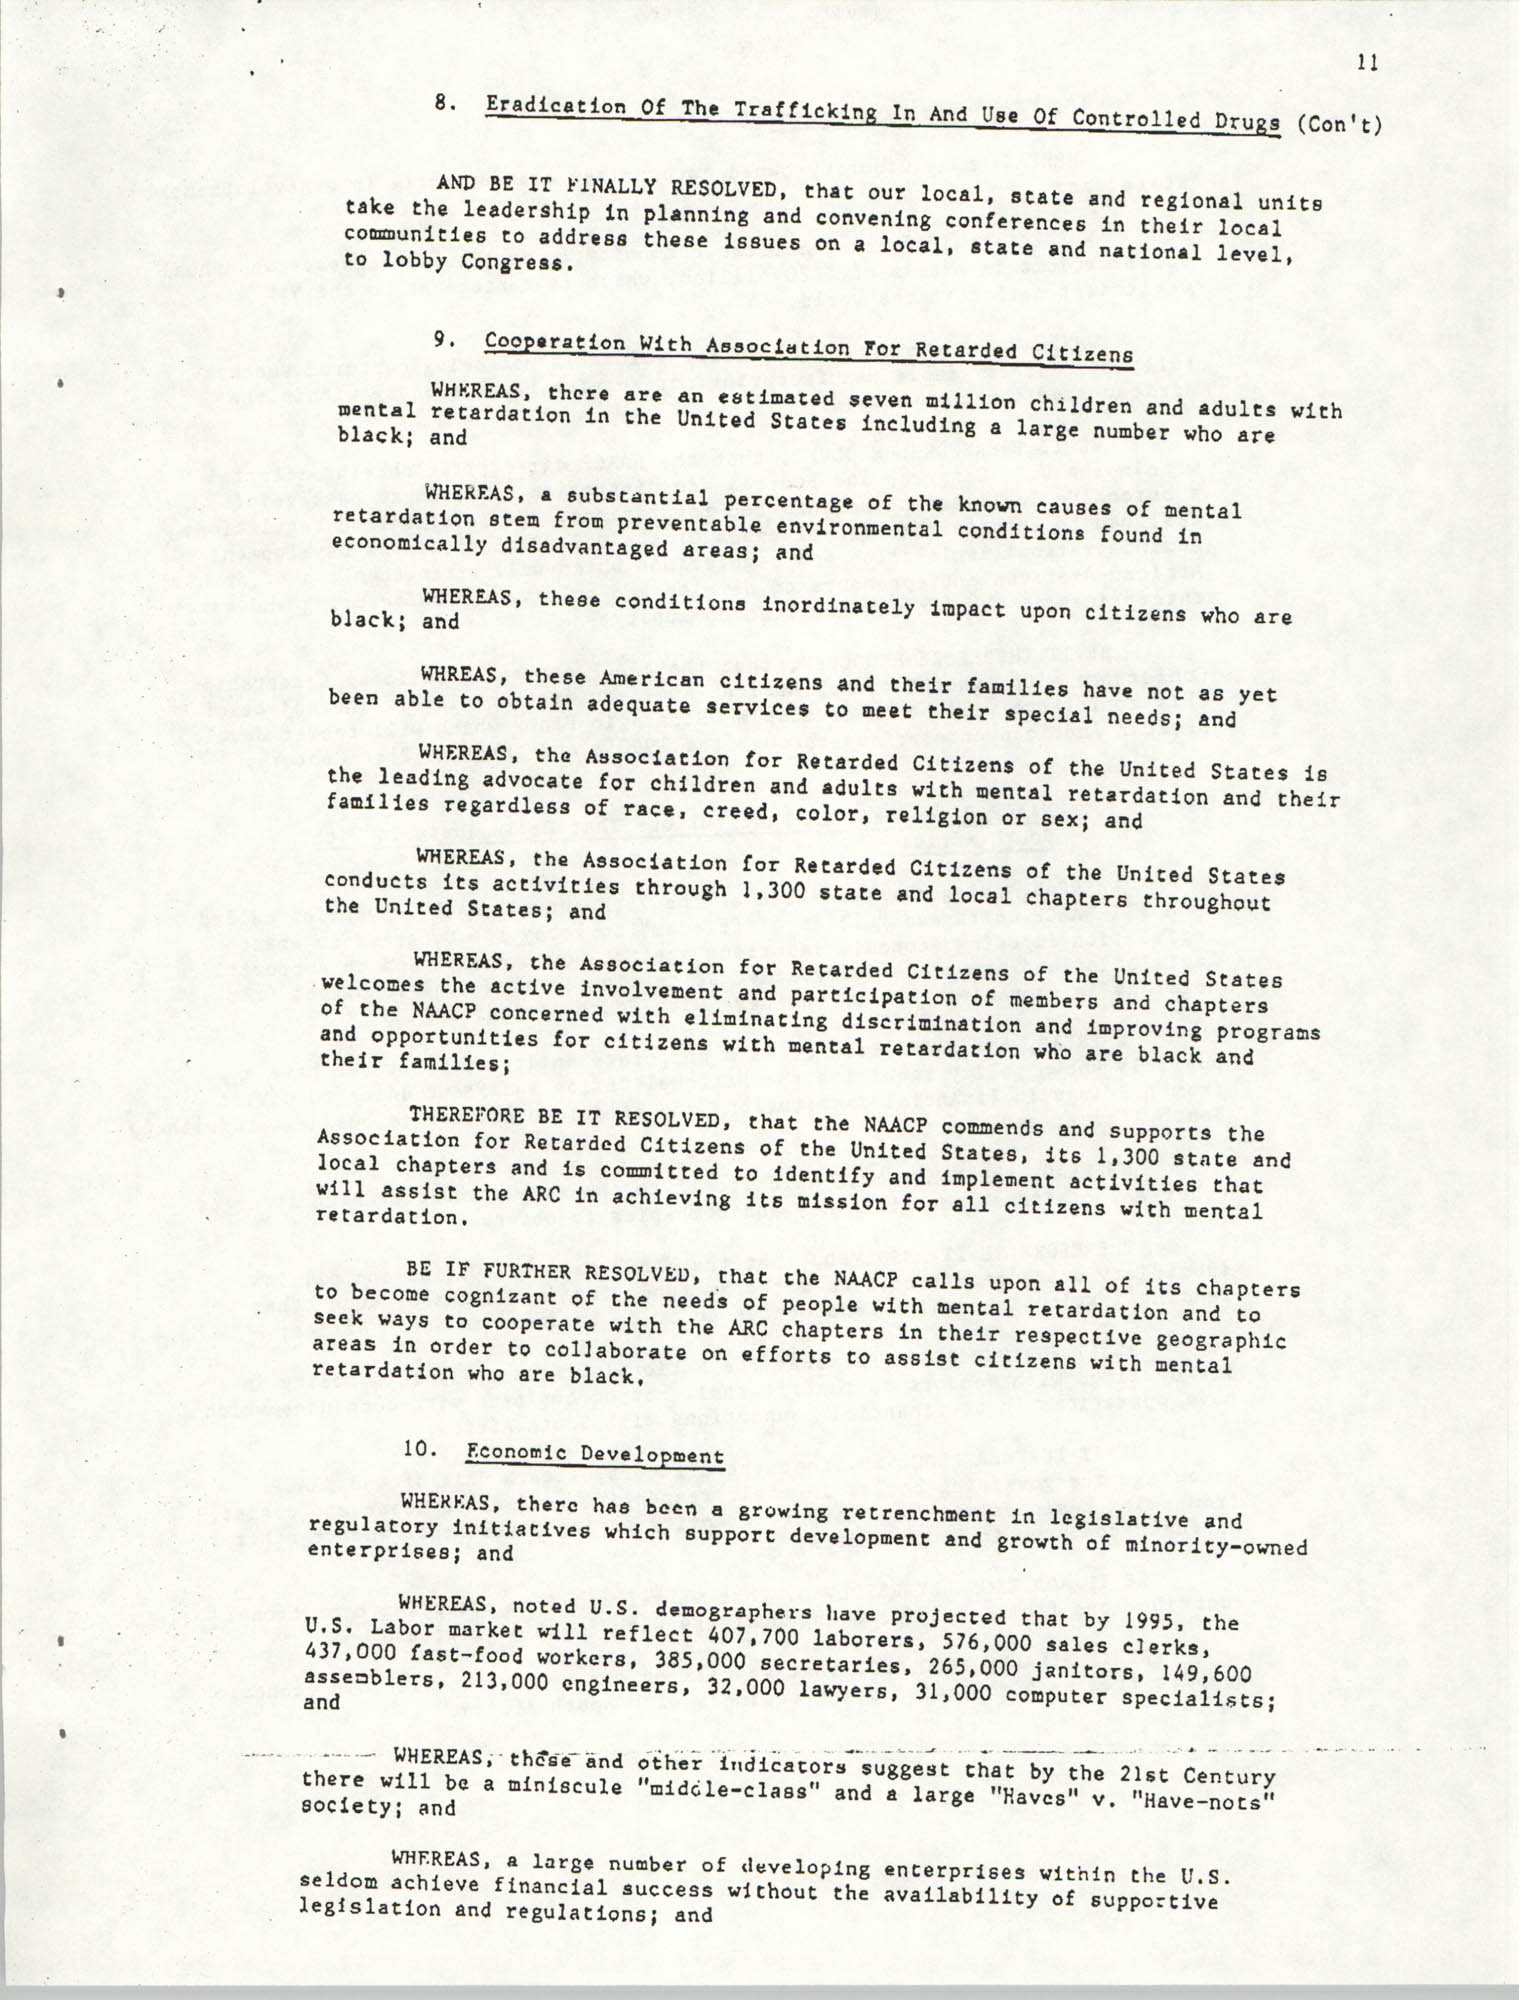 Resolutions Submitted Under Article X, Section 2 of the Constitution of the NAACP, Page 11